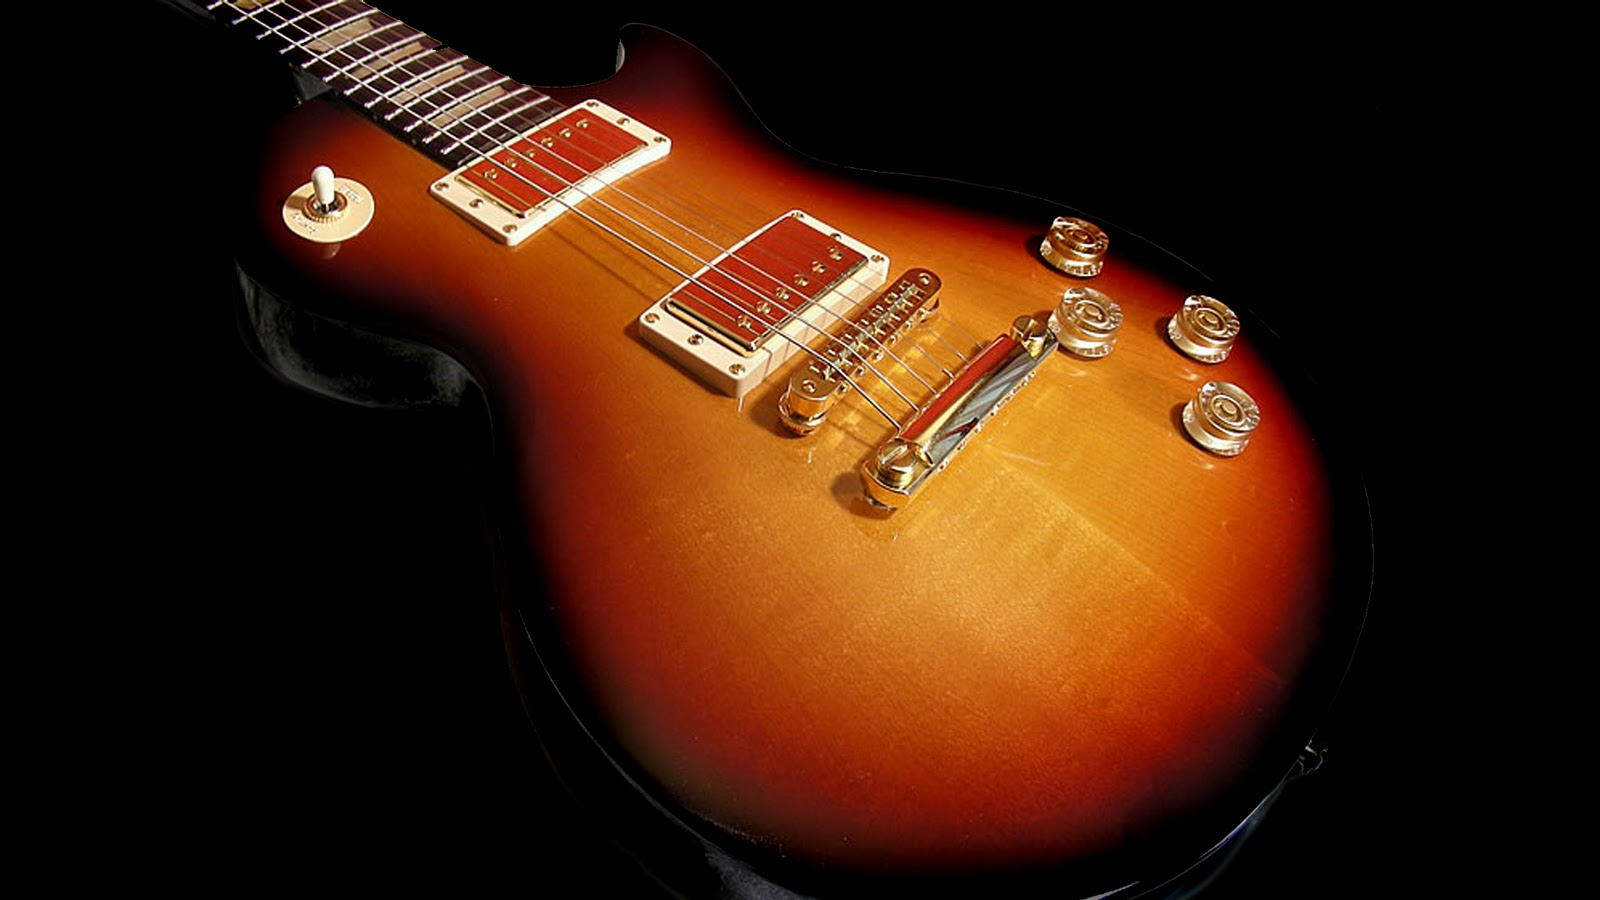 Fireburst Vintage Gibson Les Paul Gold Hardware Electric Guitar HD Desktop Wallpaper 1920x1080